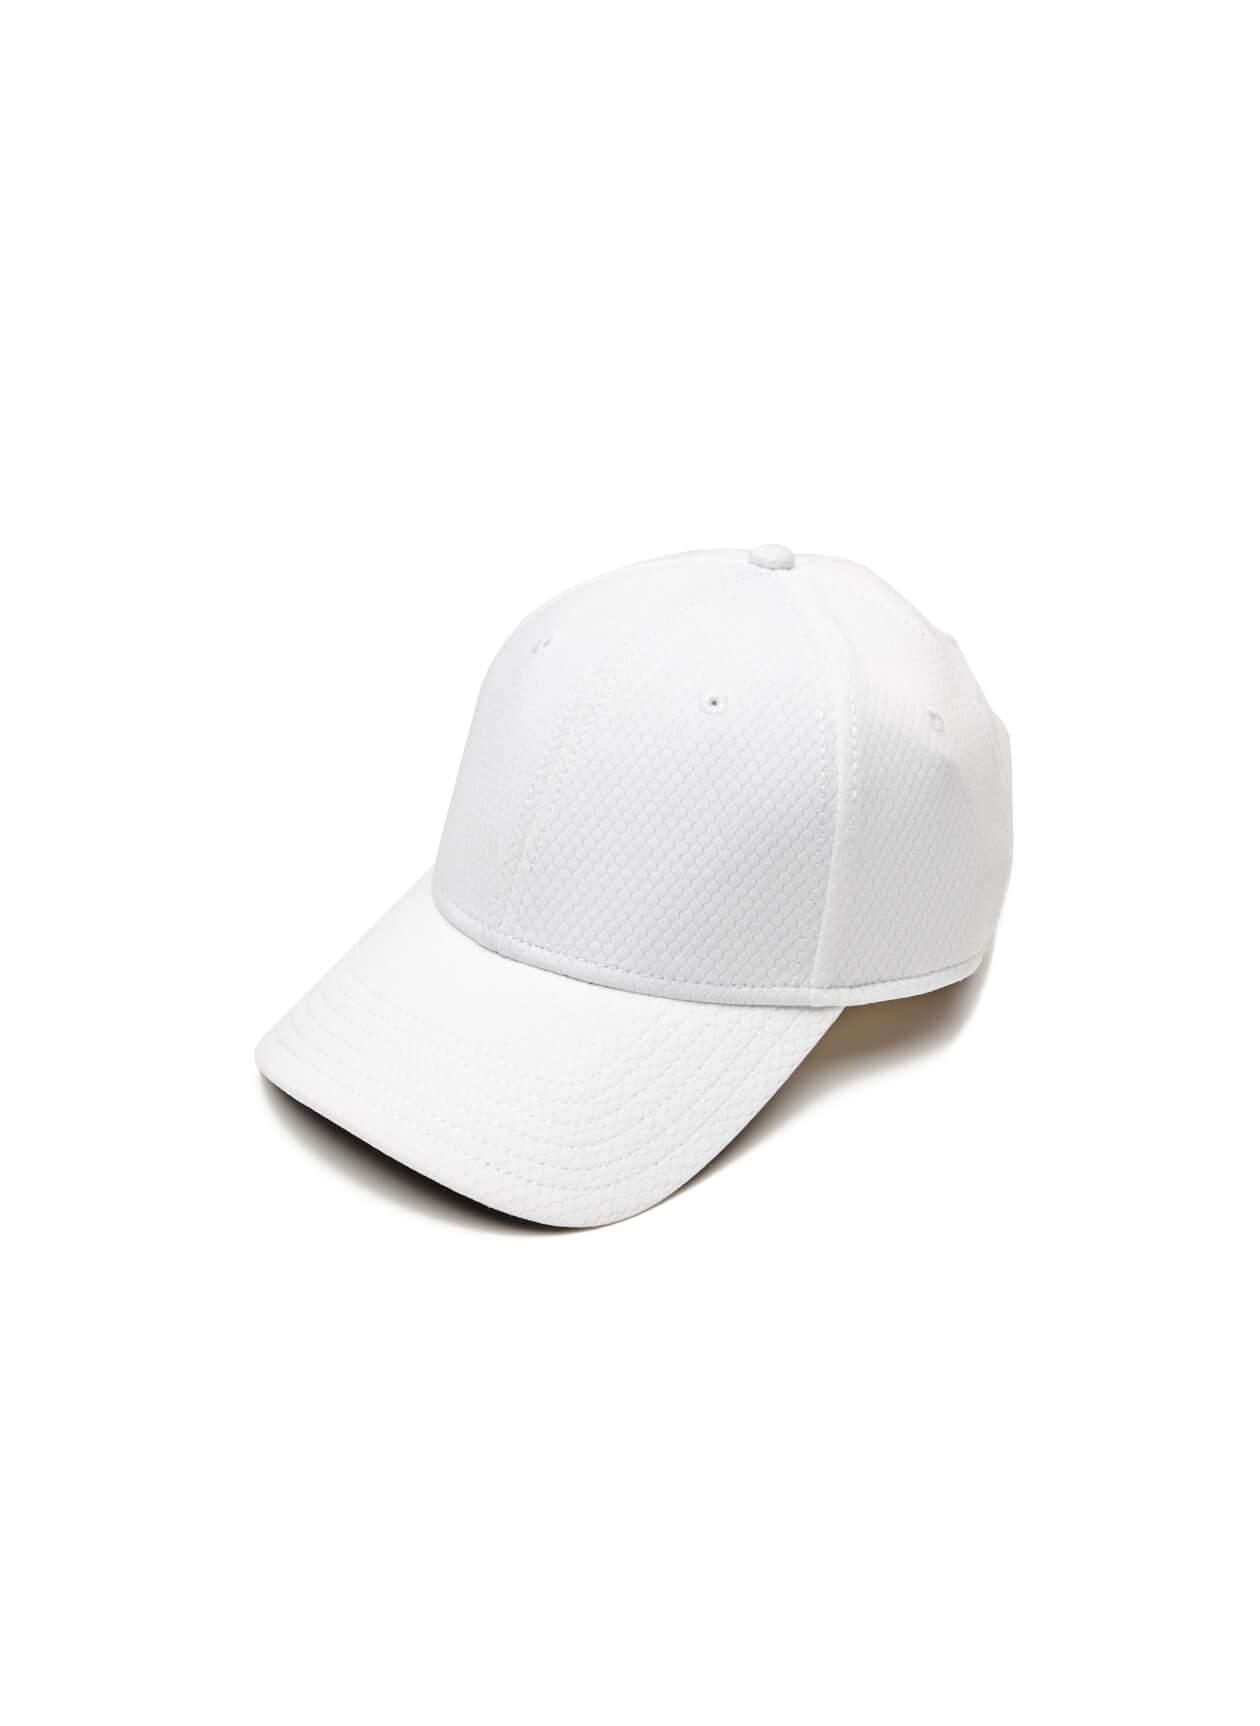 Callaway Golf Tour Performance Cap